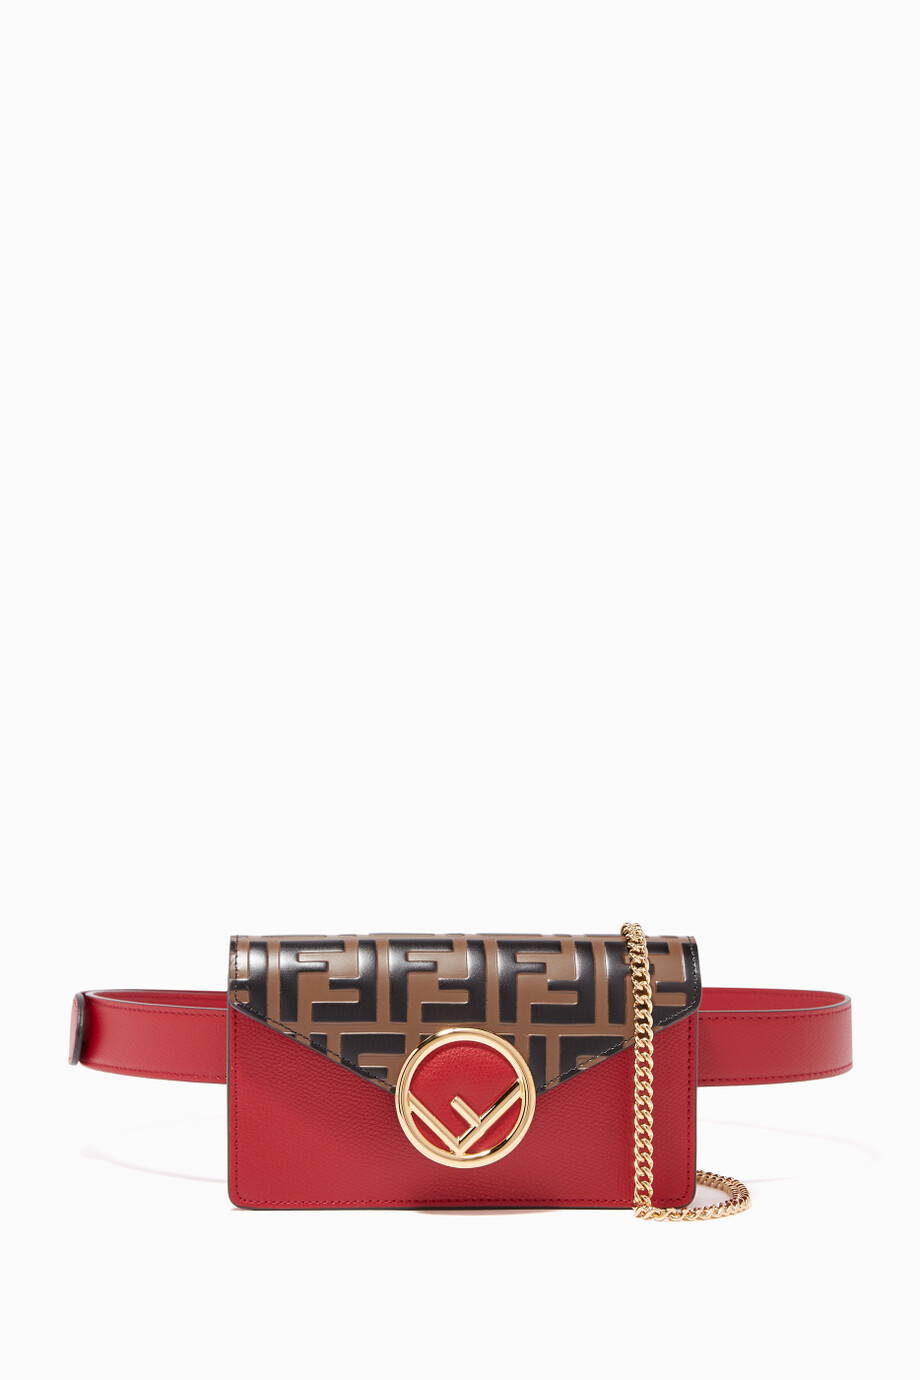 3f8b4bad38b Shop Fendi Black Red Forever Fendi Leather Belt Bag for Women ...